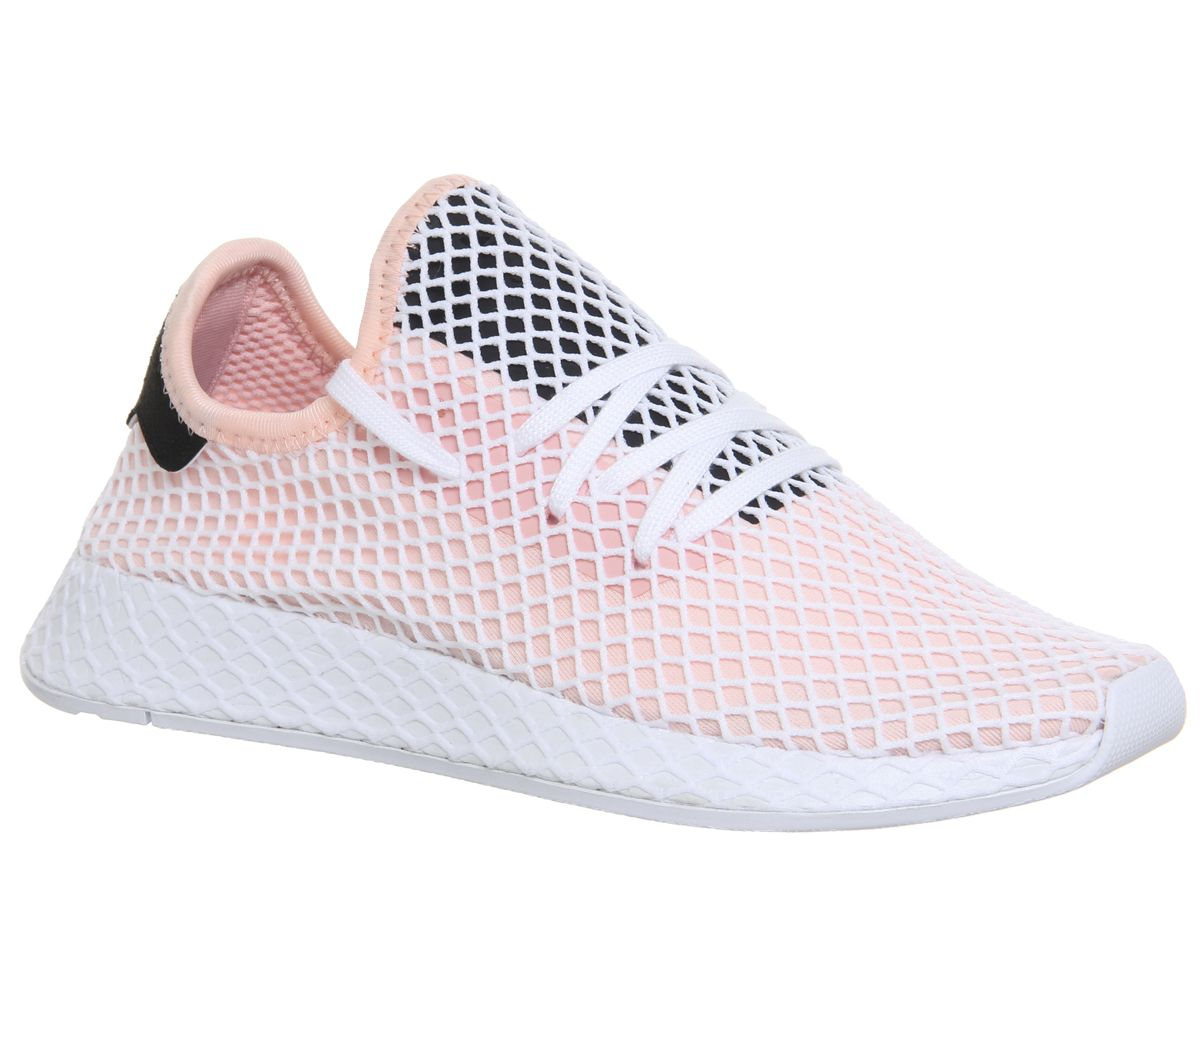 94c7760c5 adidas Deerupt Pink White Core Black - Unisex Sports